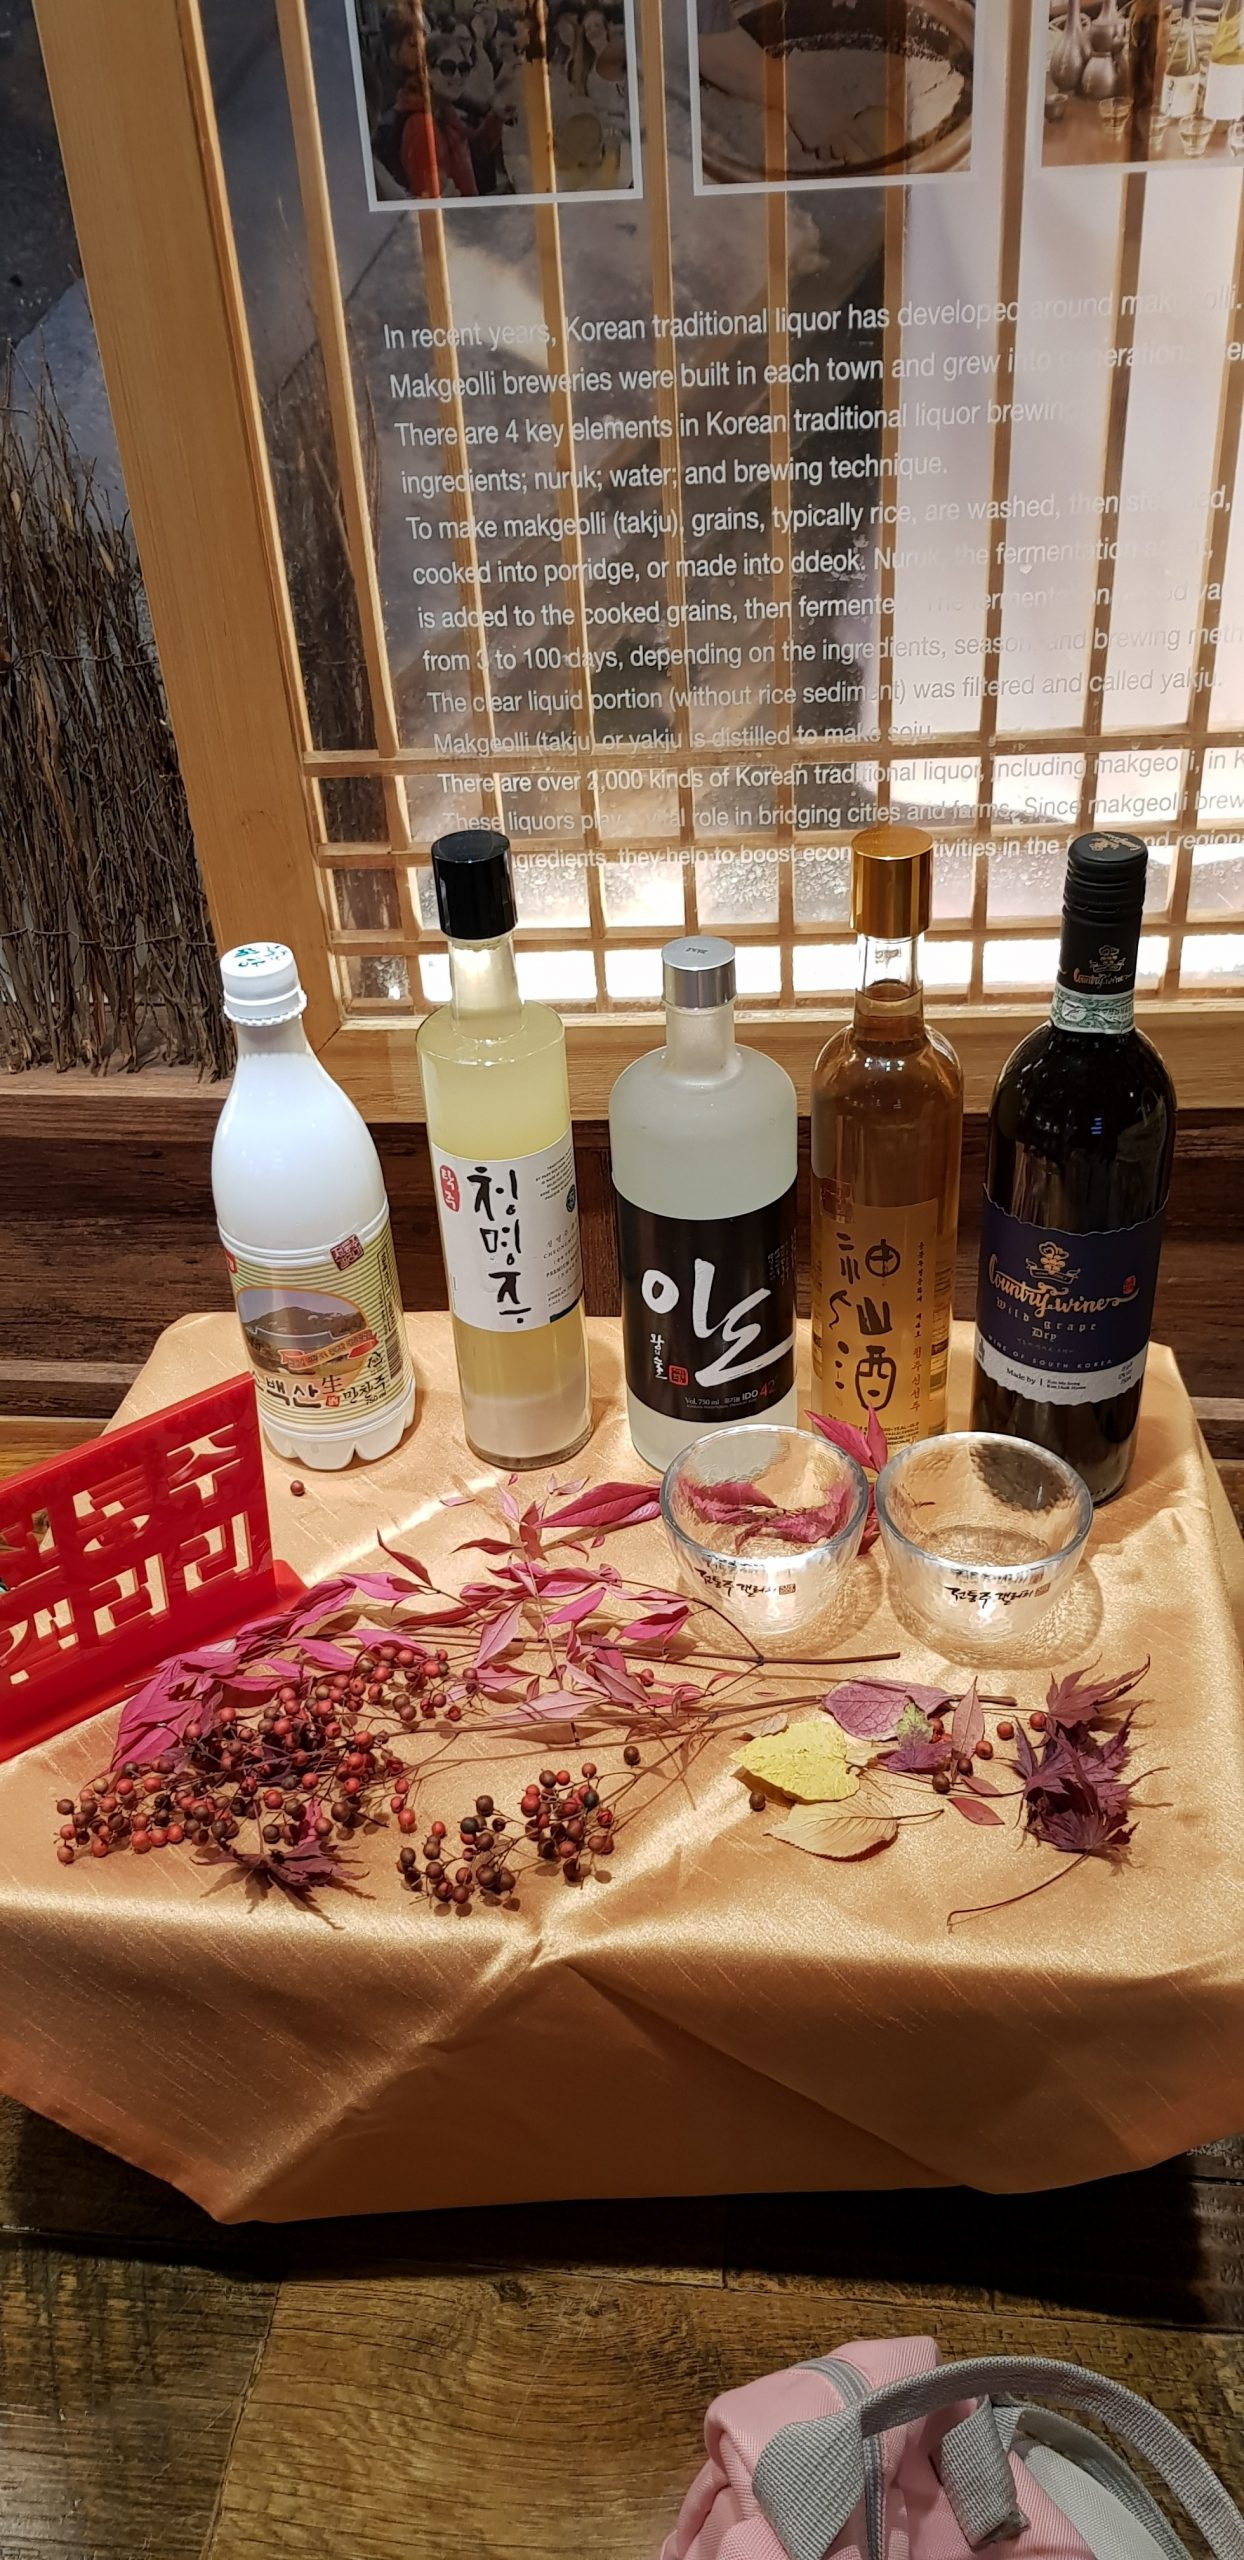 Traditional Korean liquors at The Sool Gallery